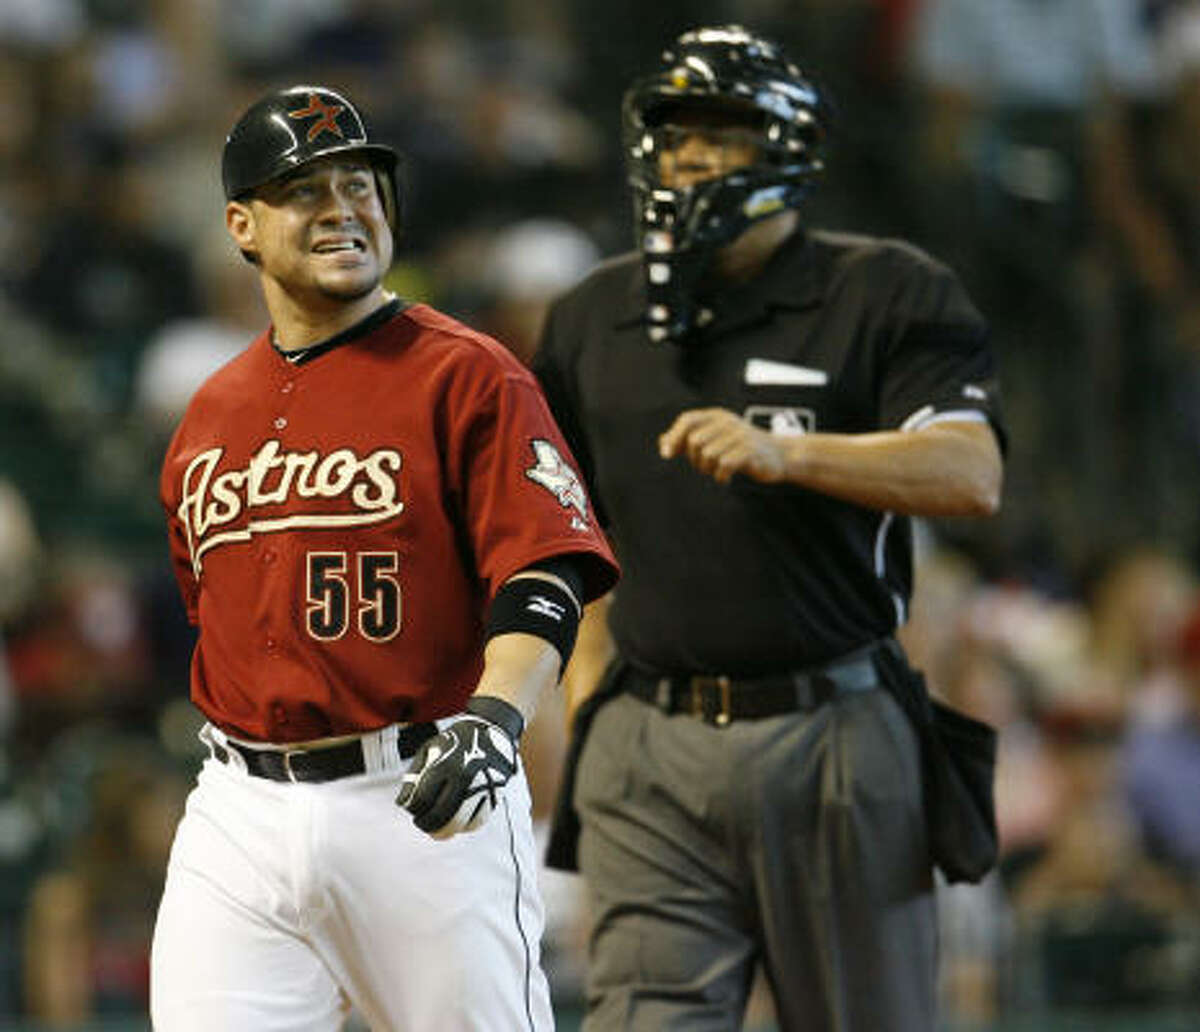 Humberto Quintero grimaces after striking out during the third inning.